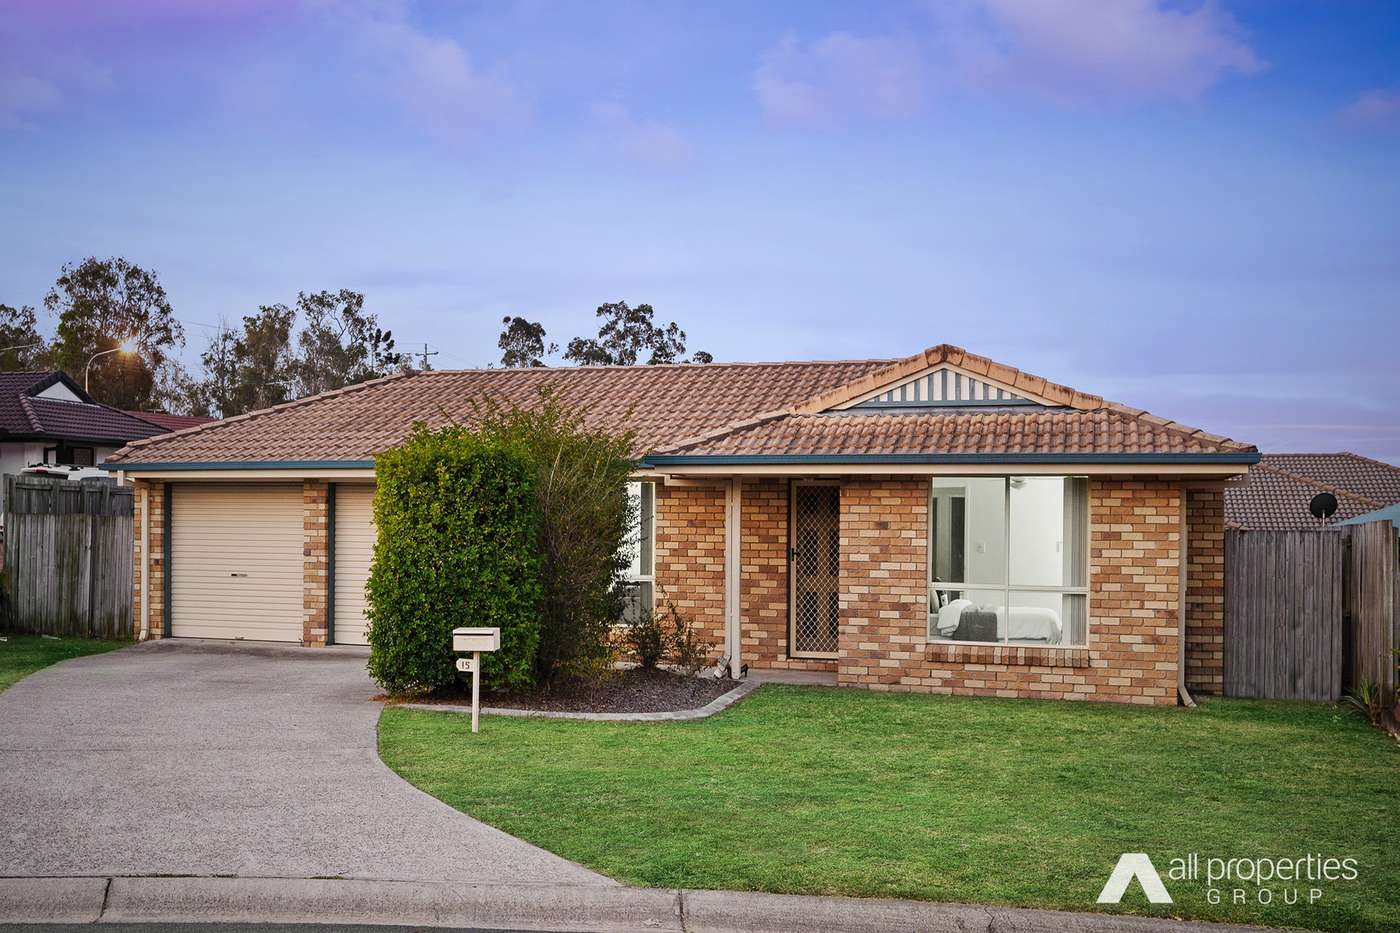 Main view of Homely house listing, 15 Windamere Court, Heritage Park, QLD 4118